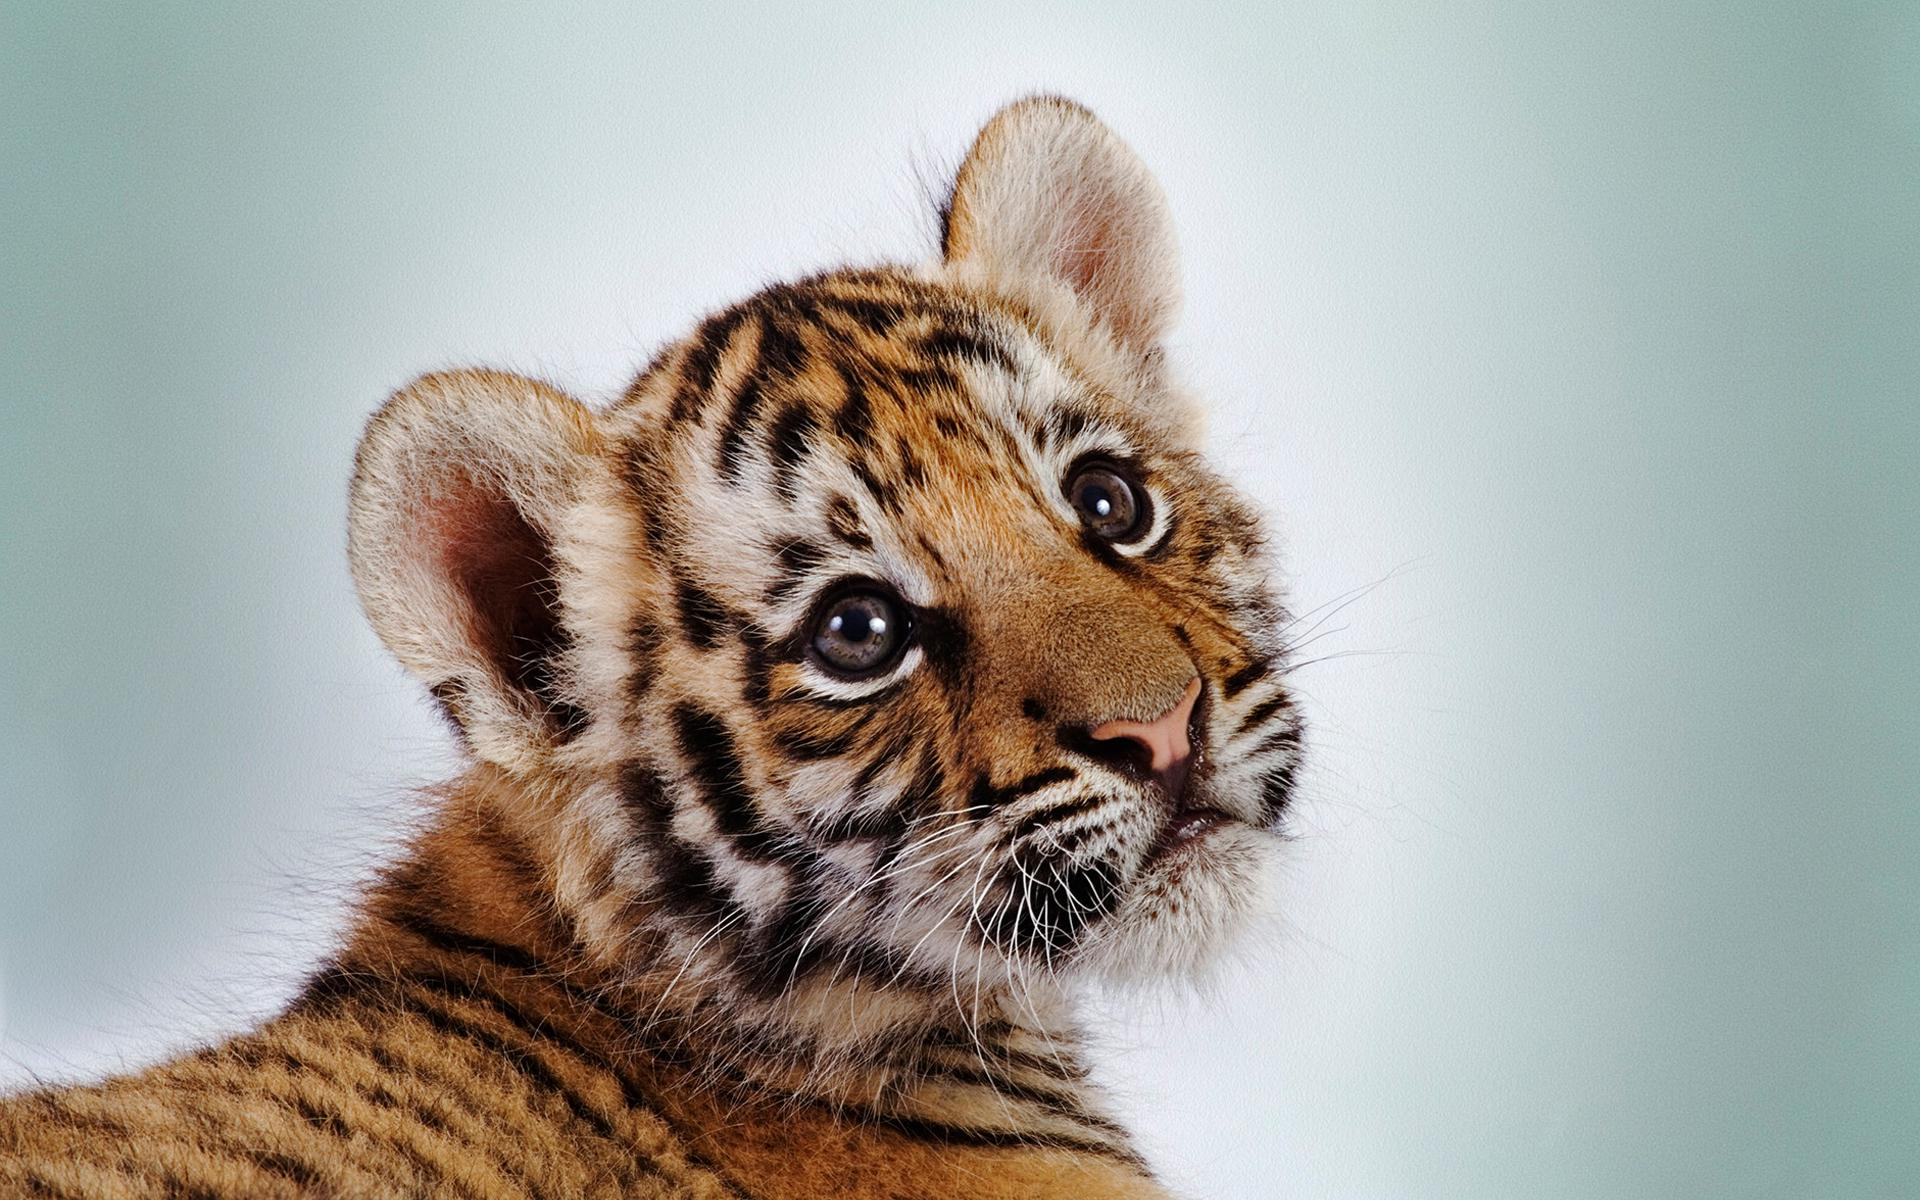 Baby Tiger Wallpapers High Quality Hd Siberian Fire Black High